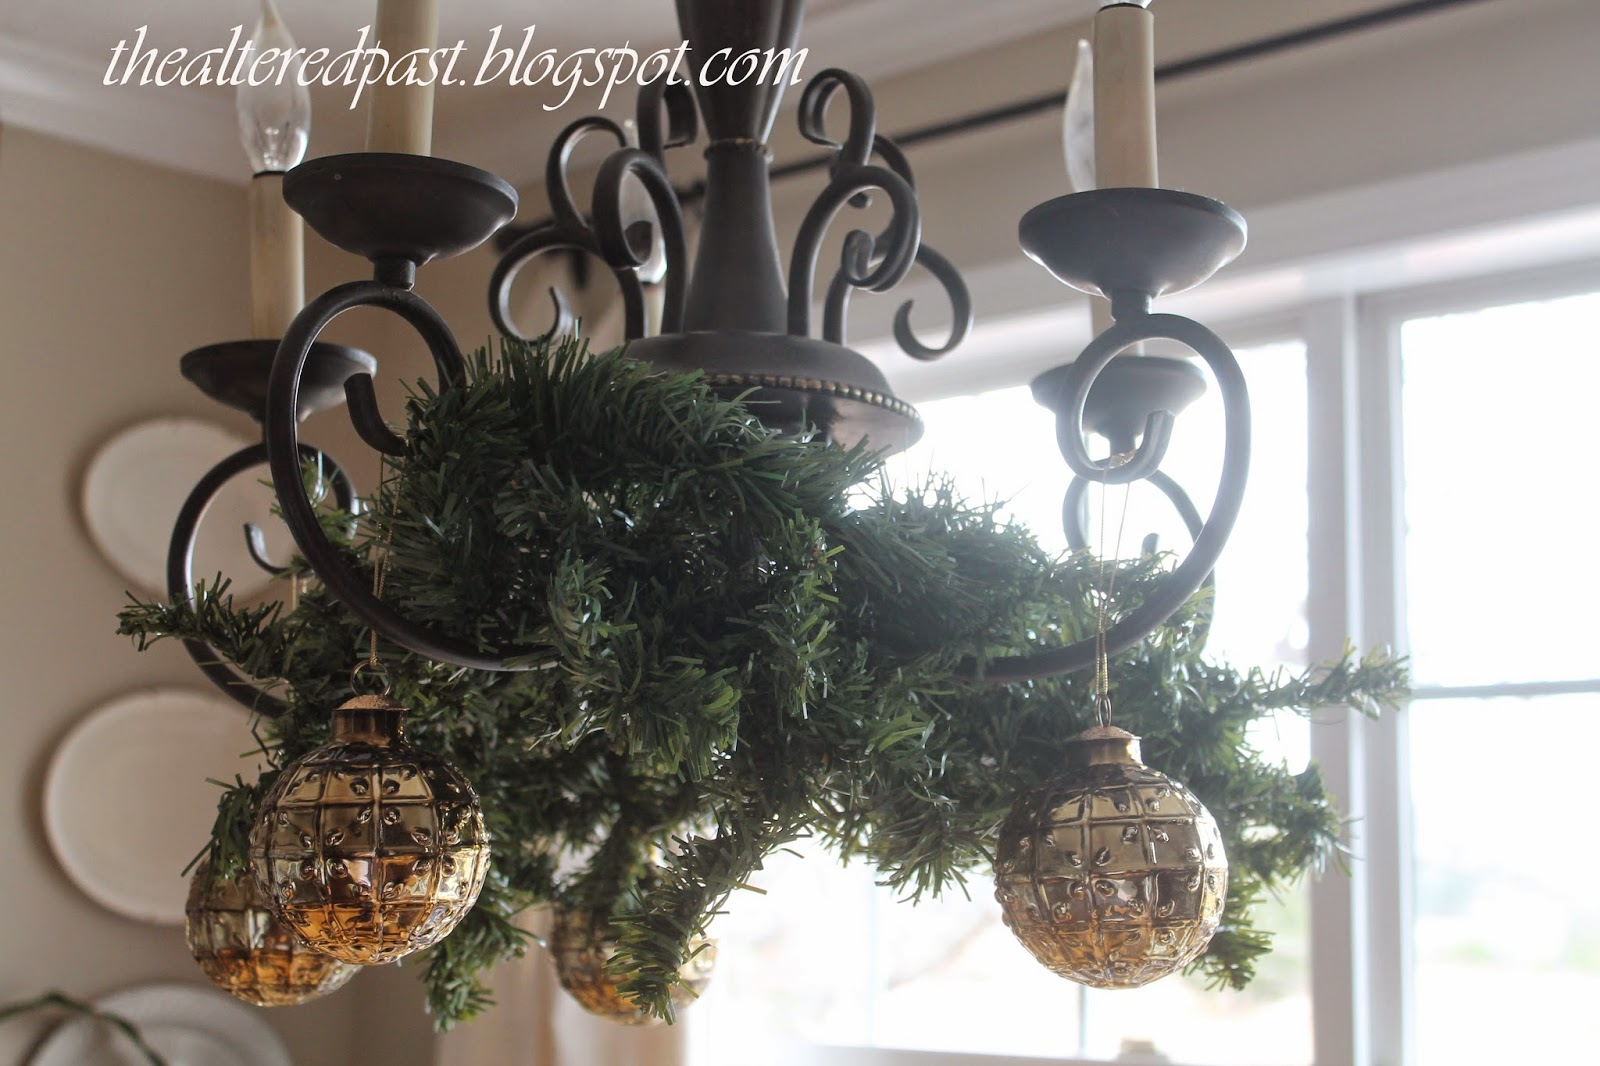 christmas home decor, greenery and gold balls on chandelier, the altered past